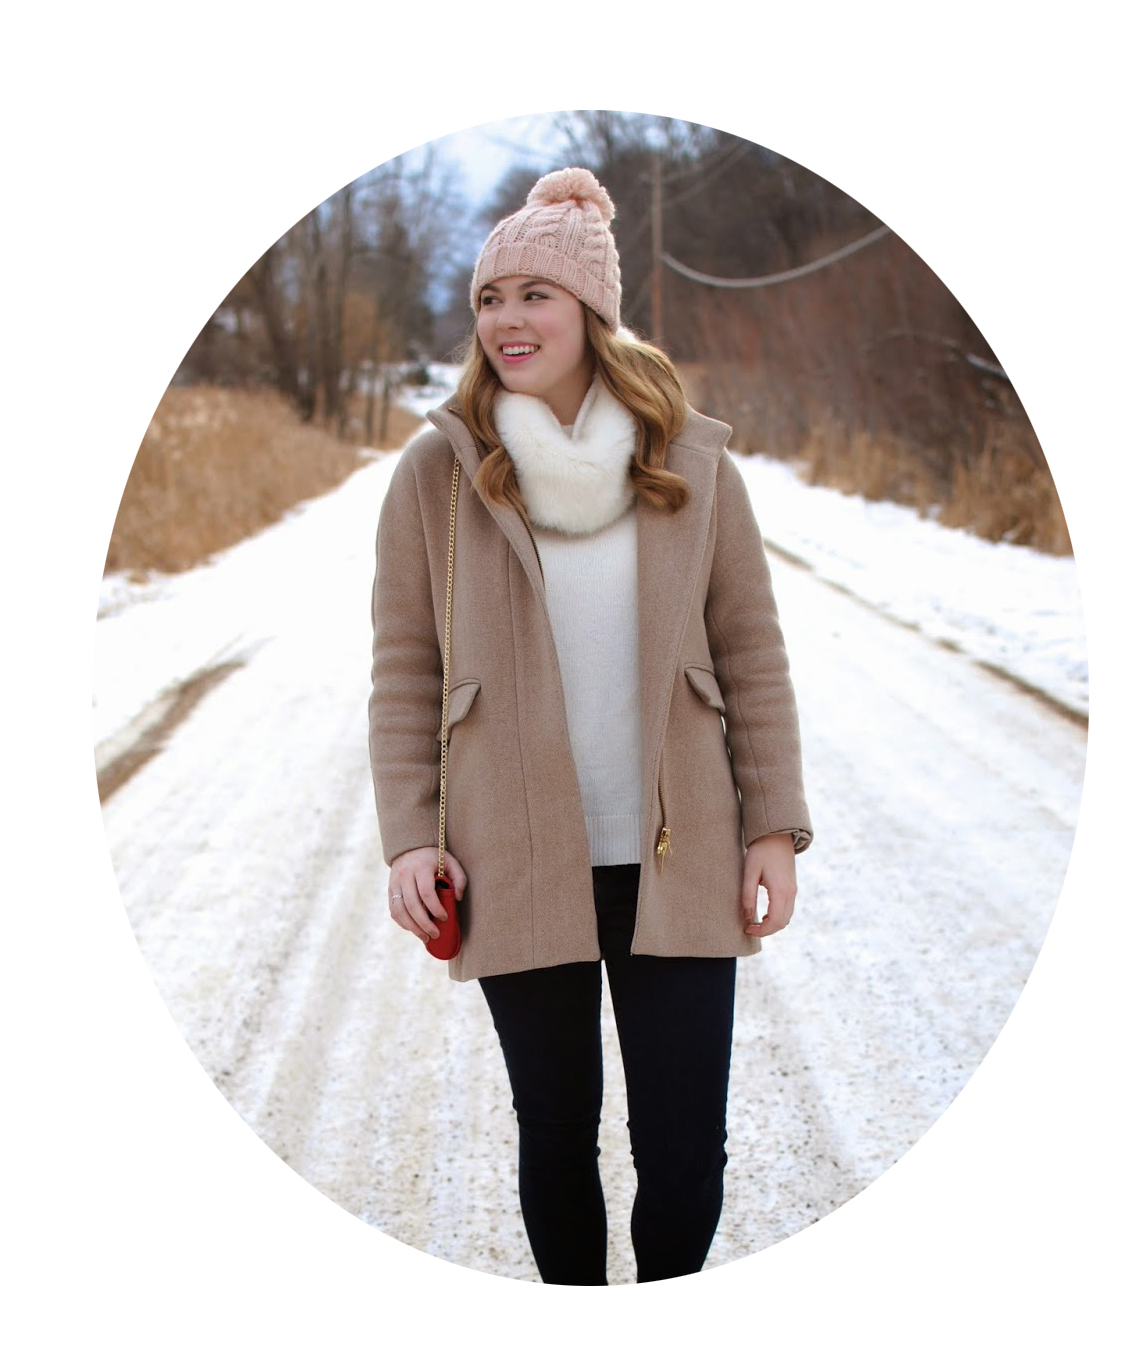 Catherine Day is a Minneapolis life and style blogger at myinnerfabulous.com.She has lived in Minneapolis her whole life and loves it because there's so much to offer and there are always new places to see and try!Follow Catherine on Instagram at @catherine_m_day.